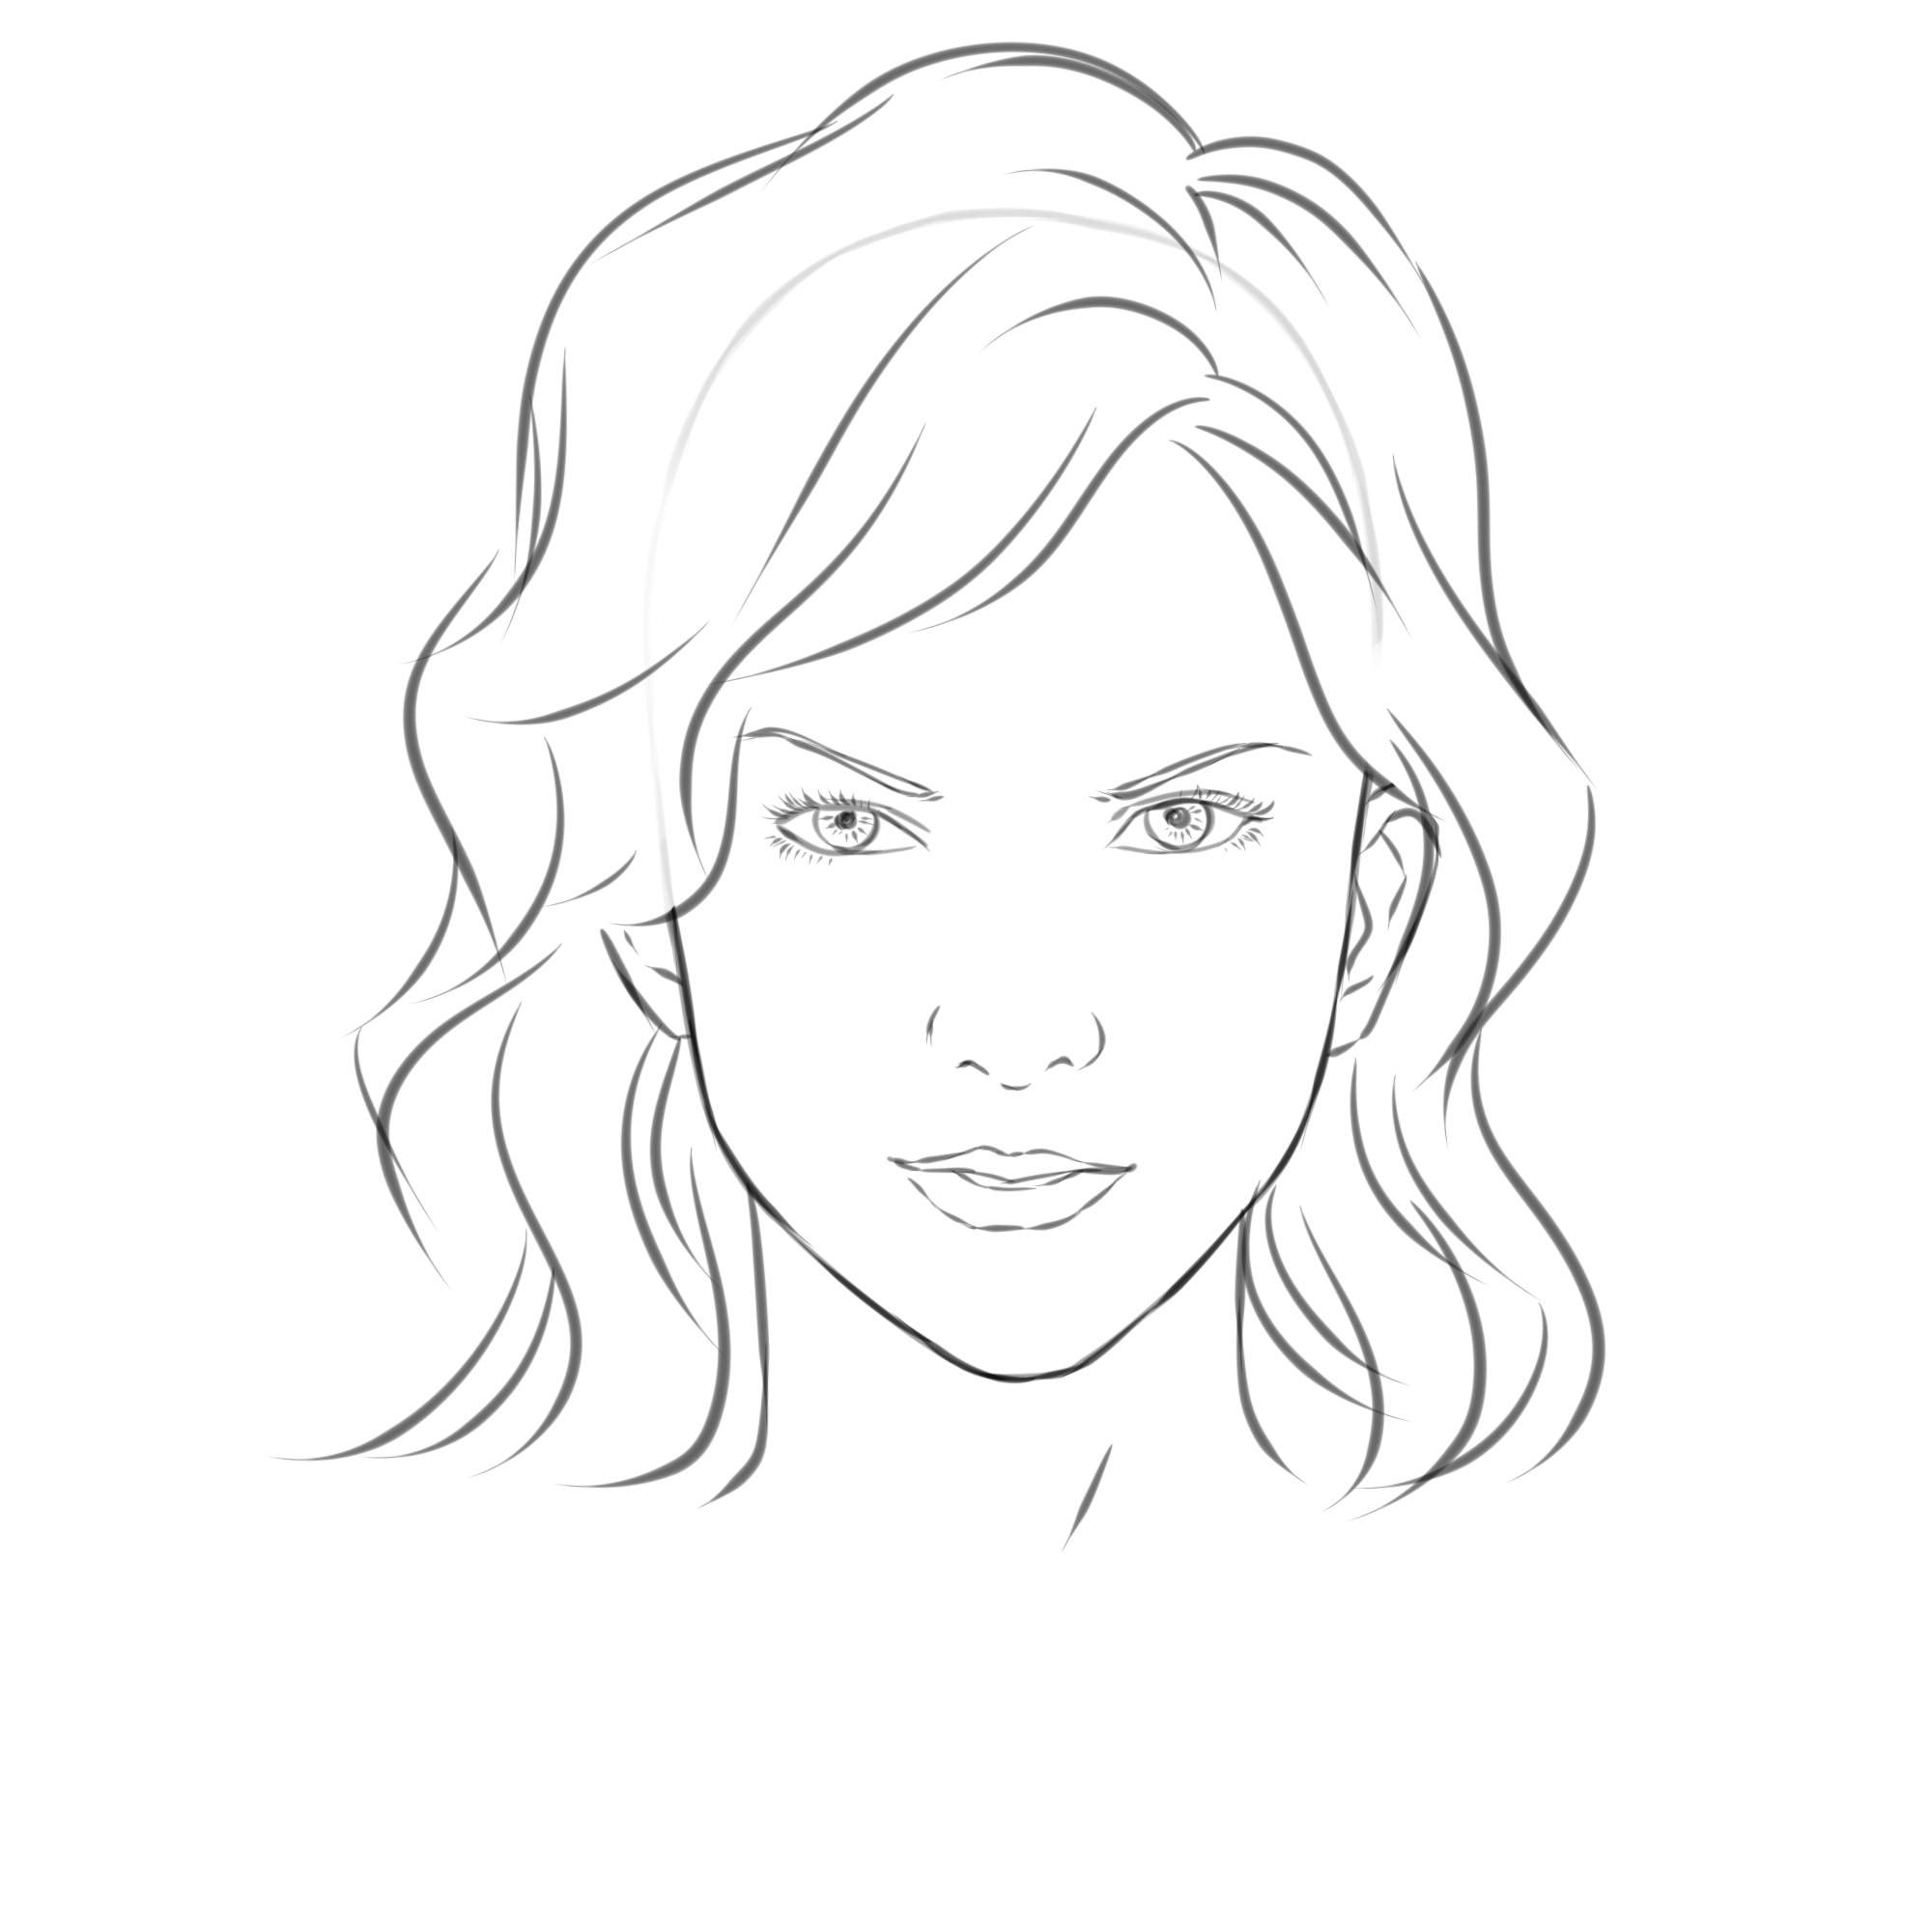 2000x2000 Female Face Drawing Step By Step How To Draw A Face From The Side